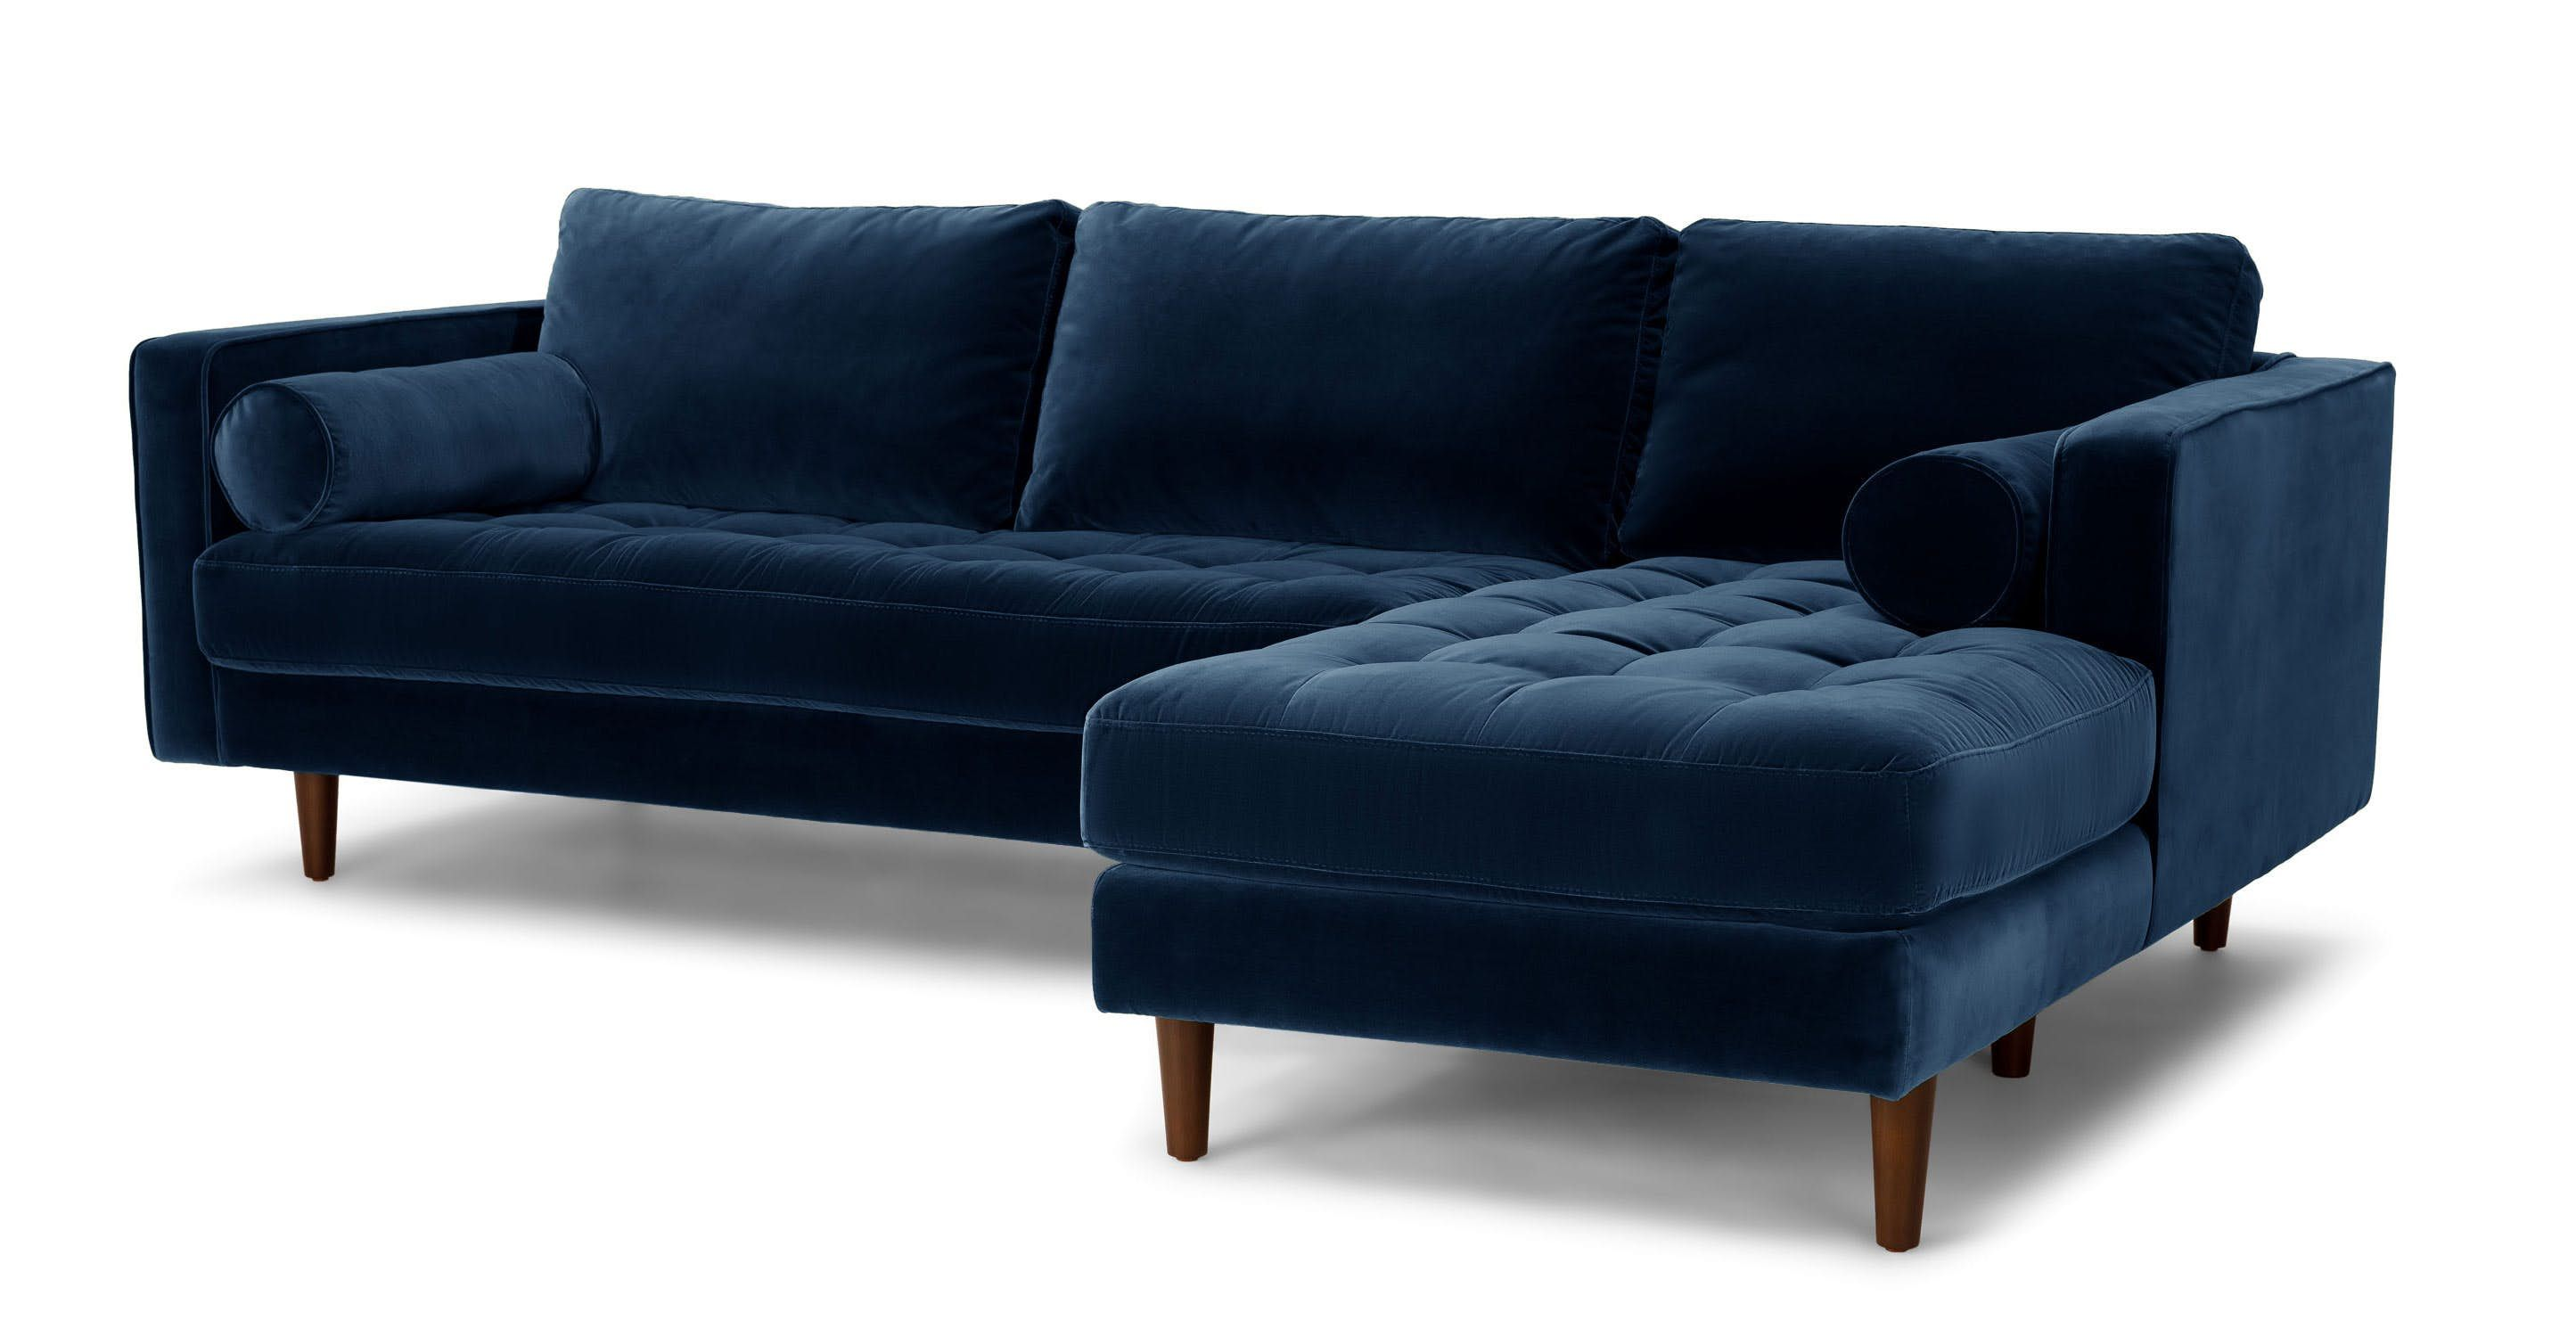 Sven Cascadia Blue Right Sectional Sofa Sectionals Modern Mid Century And Scandinavian Furniture Ecksofas L Förmiges Sofa Sofas Wohnzimmer